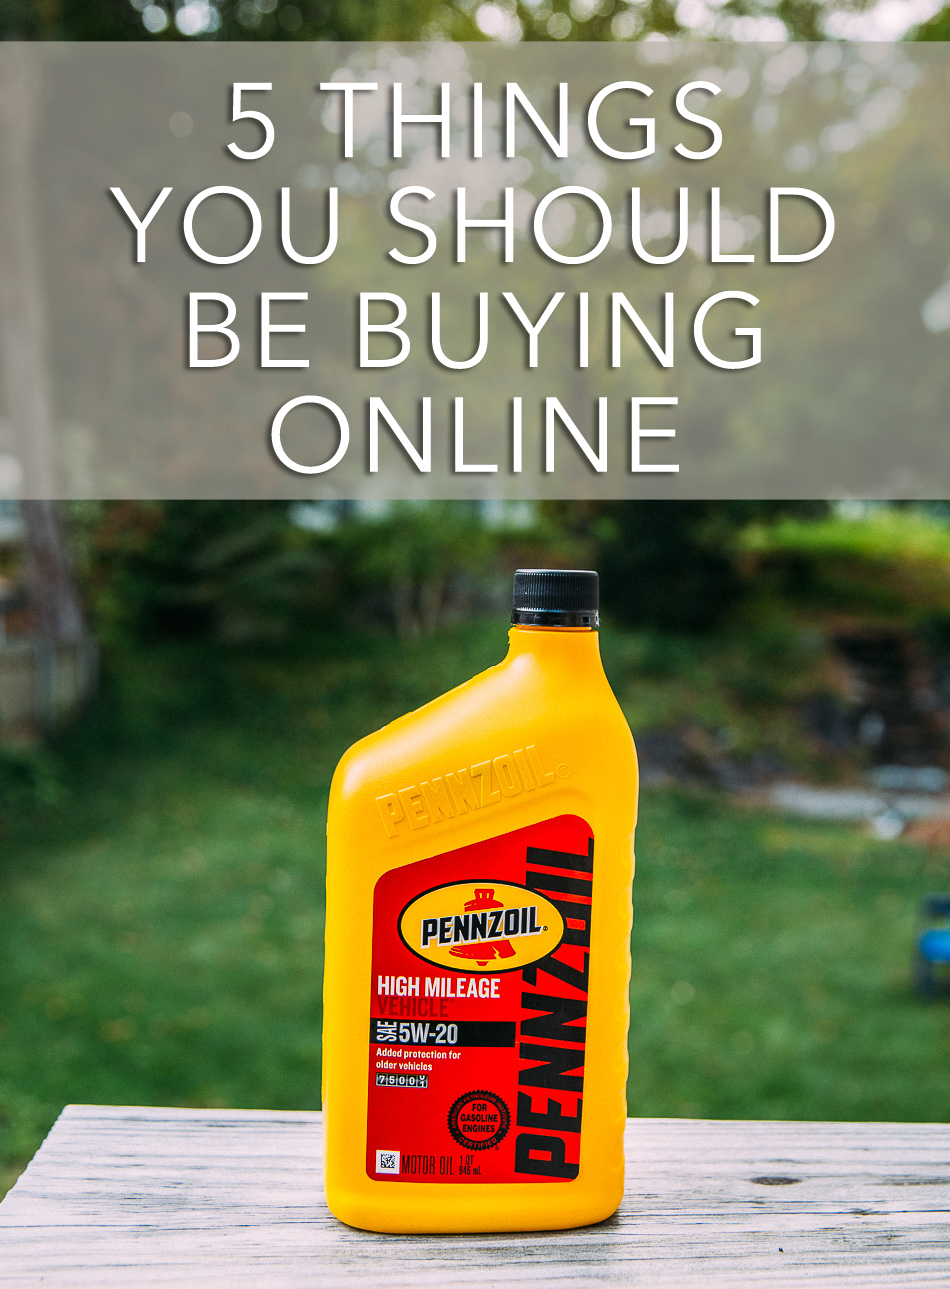 5 Things You Should Be Buying Online